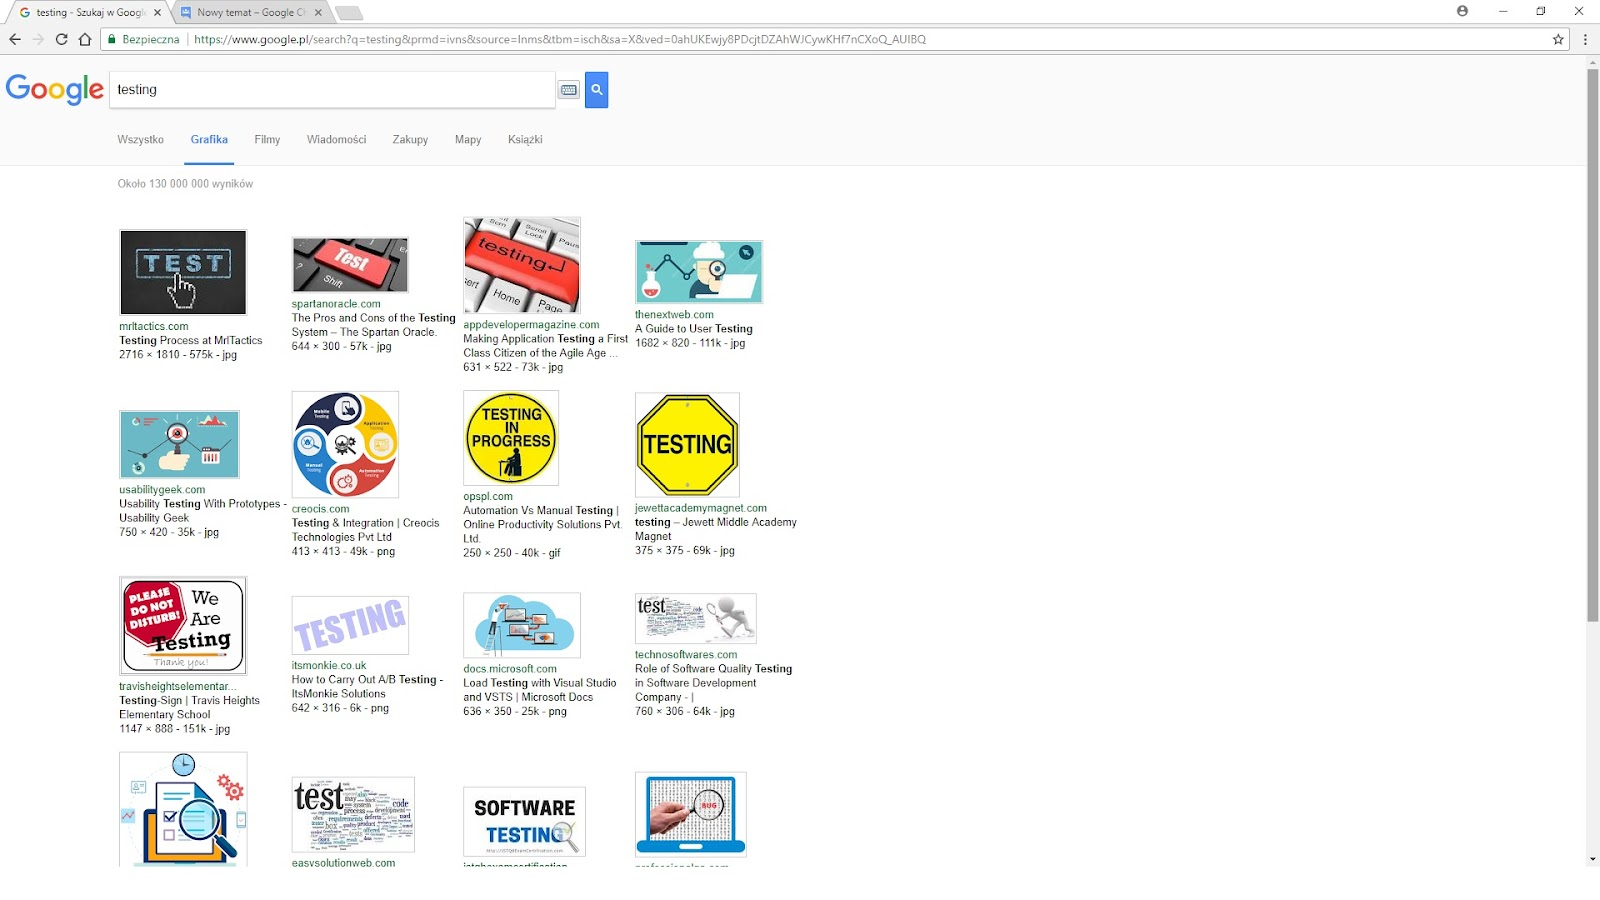 Windows 10 Google Chrome weird layout + search options gone